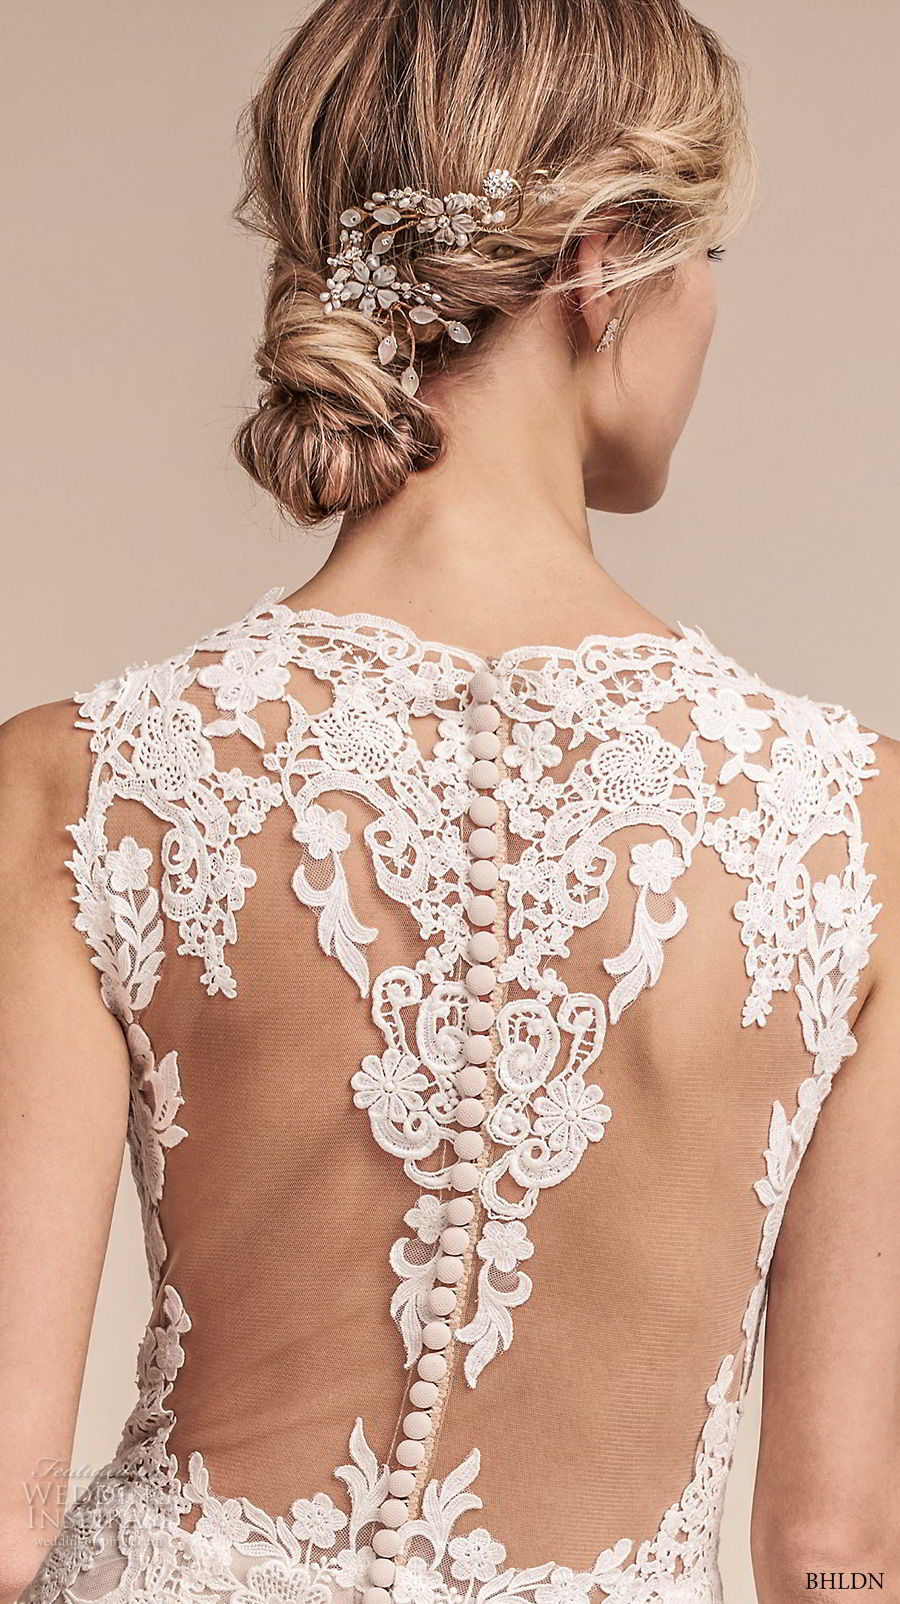 bhldn fall 2017  americana bridal sleeveless embroidered strap heavily embellished bodice elegant romantic sheath a  line wedding dress lace back short train (monarch) zbv